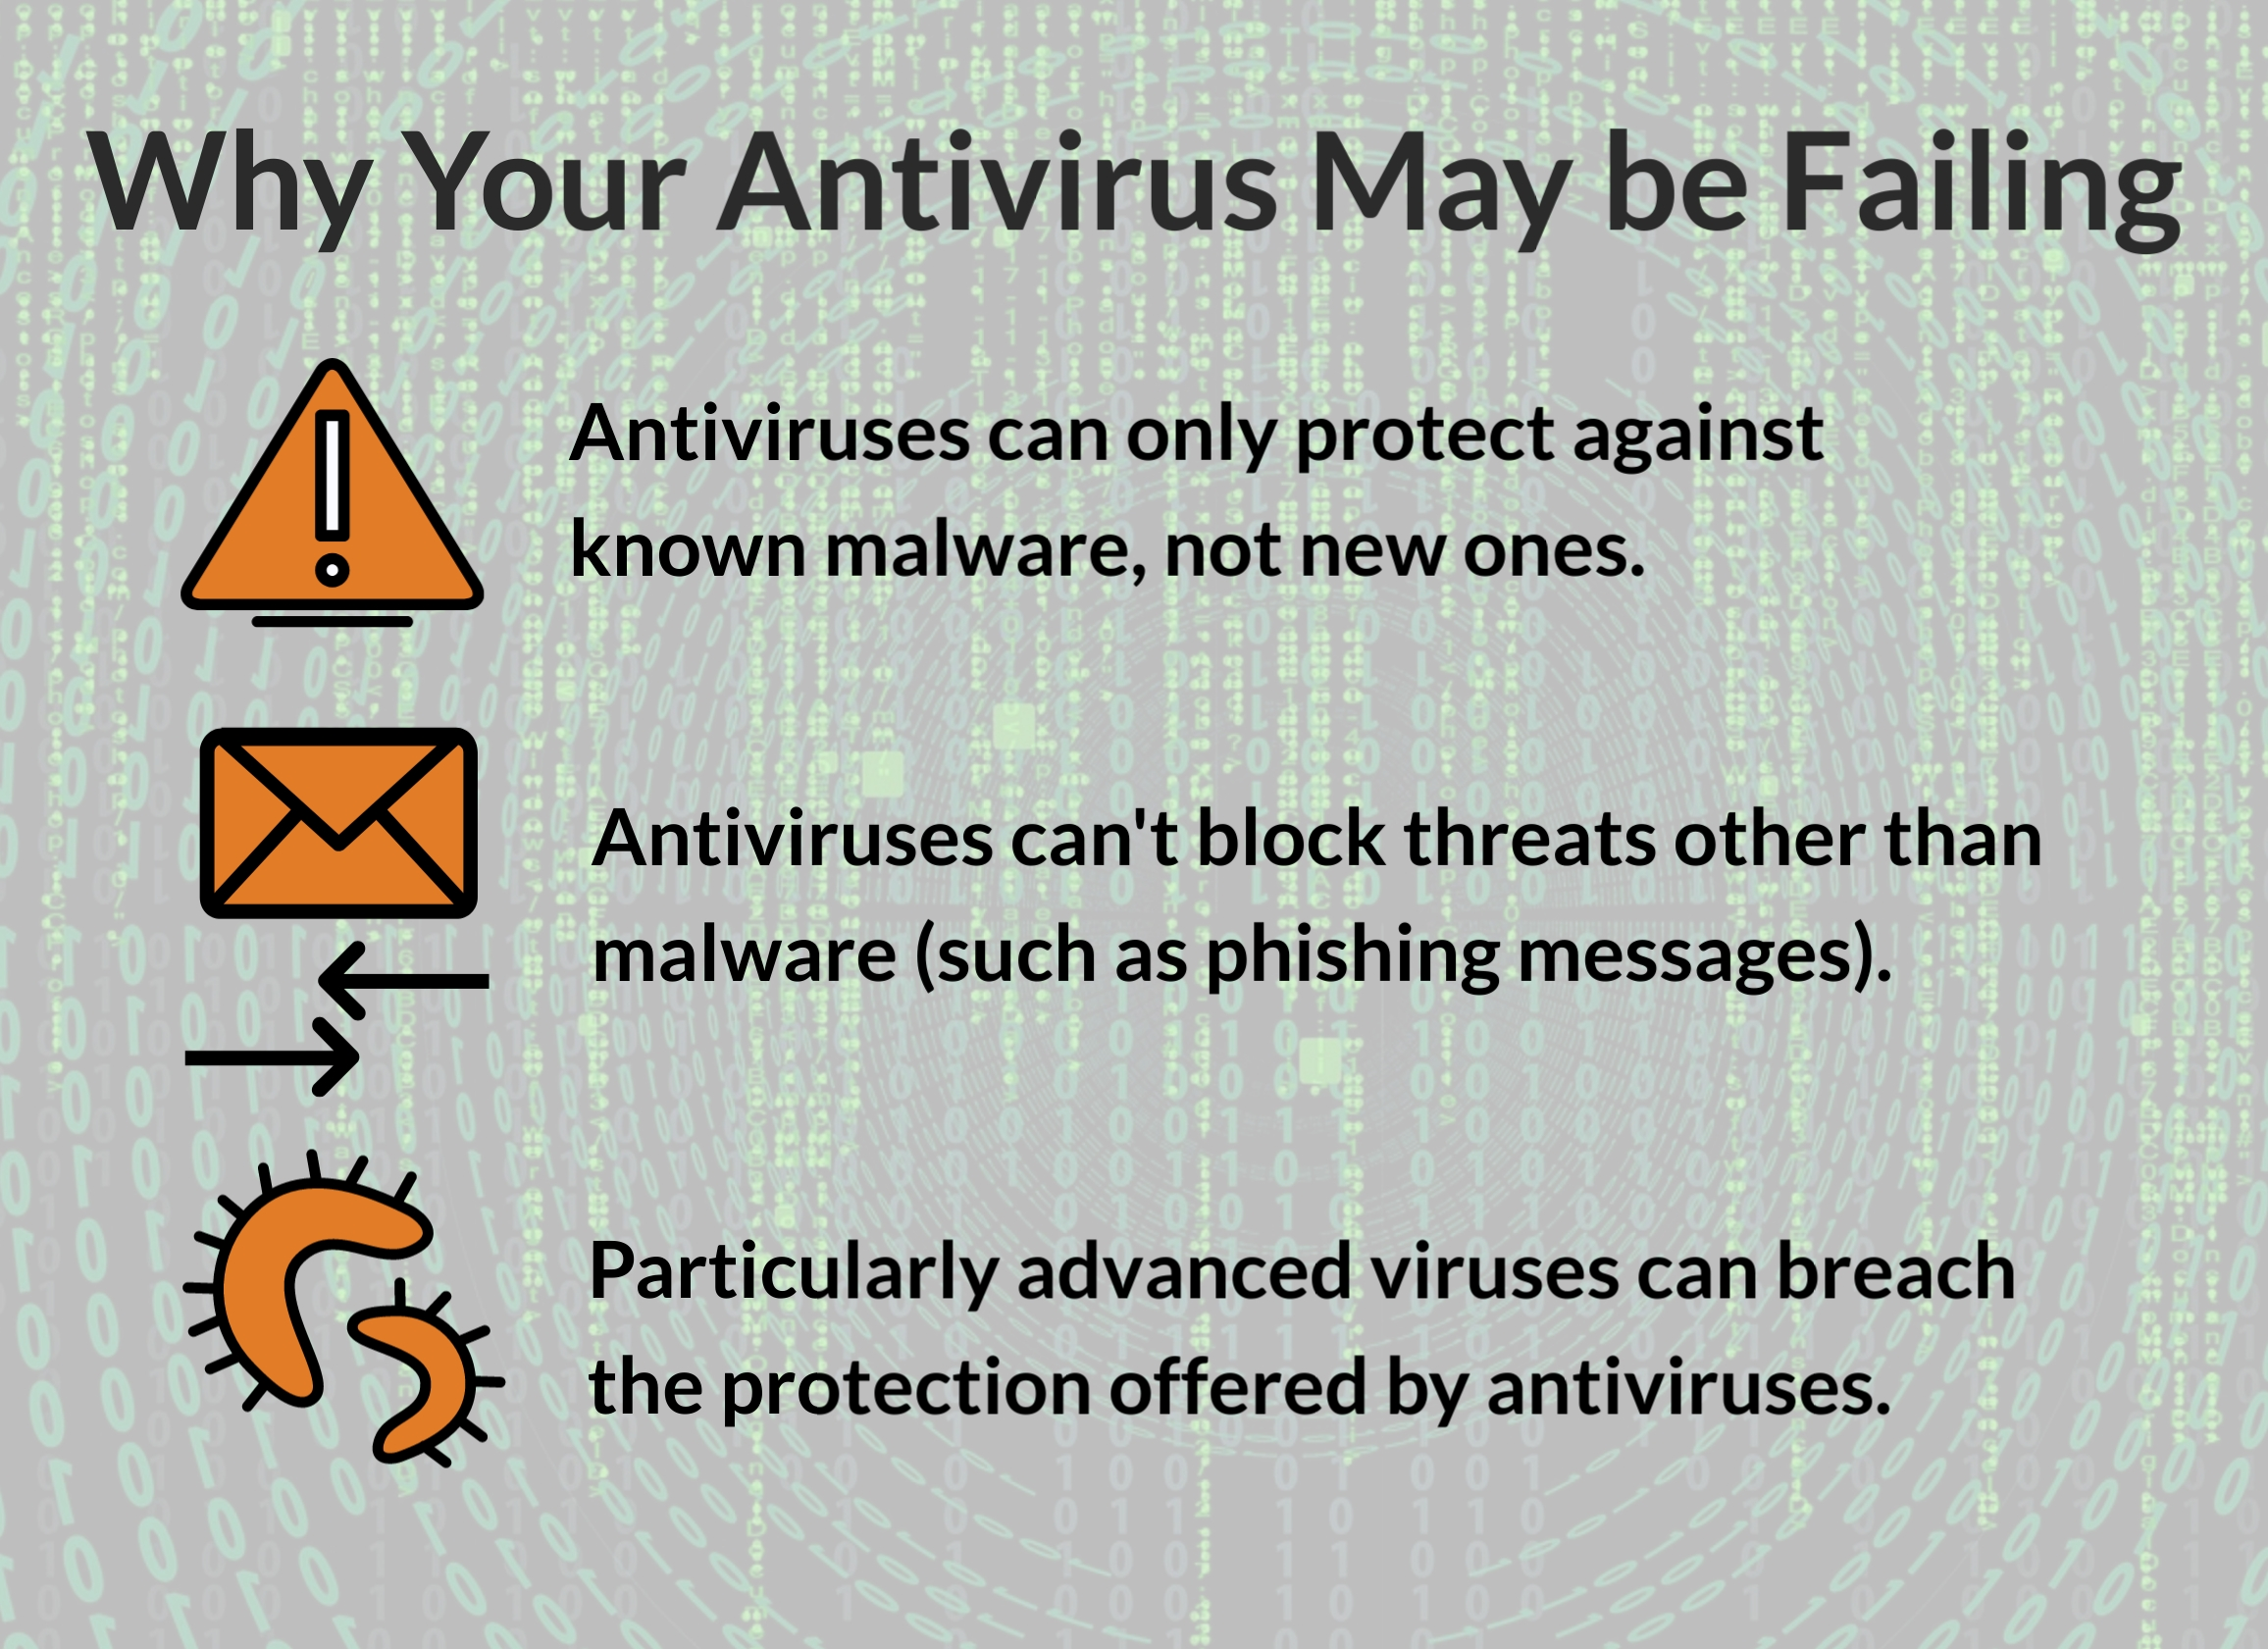 Why Your Antivirus Isn't Cutting It Anymore, Enstep Technology Solutions, Houston